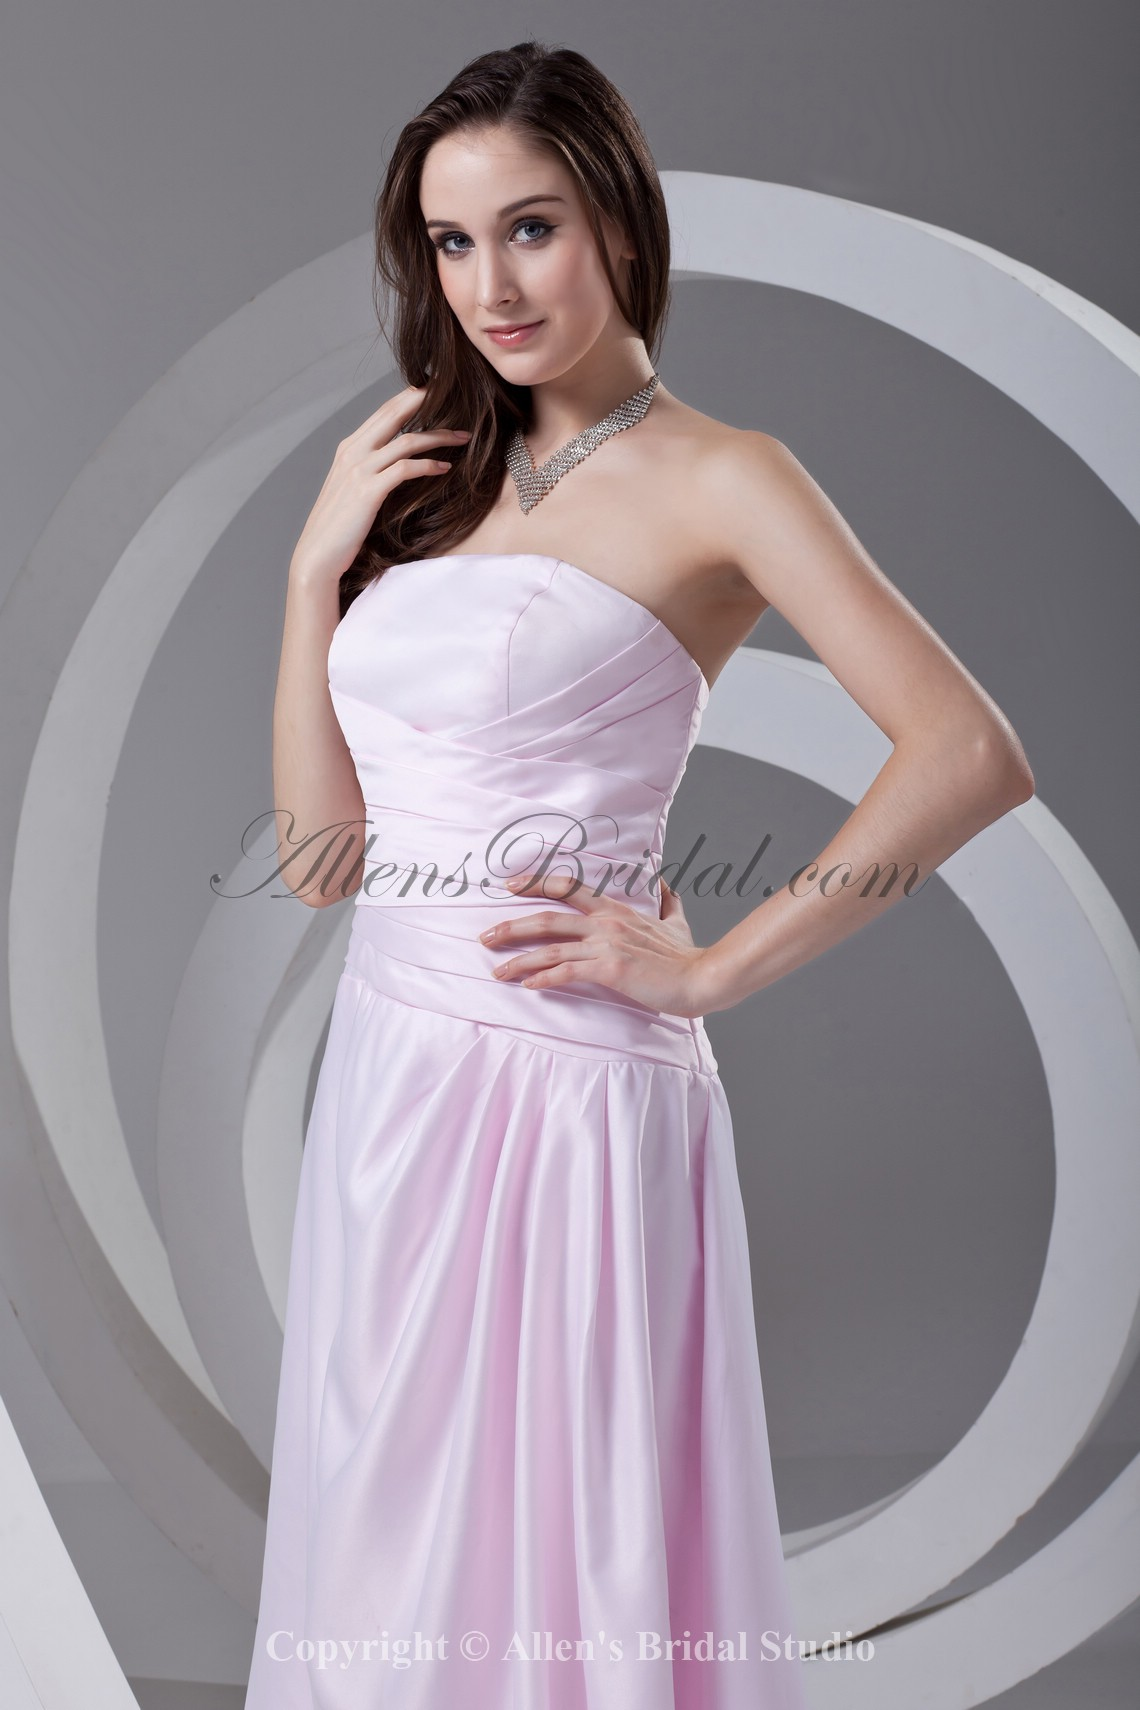 /356-2847/satin-strapless-neckline-a-line-floor-length-directionally-ruched-prom-dress.jpg